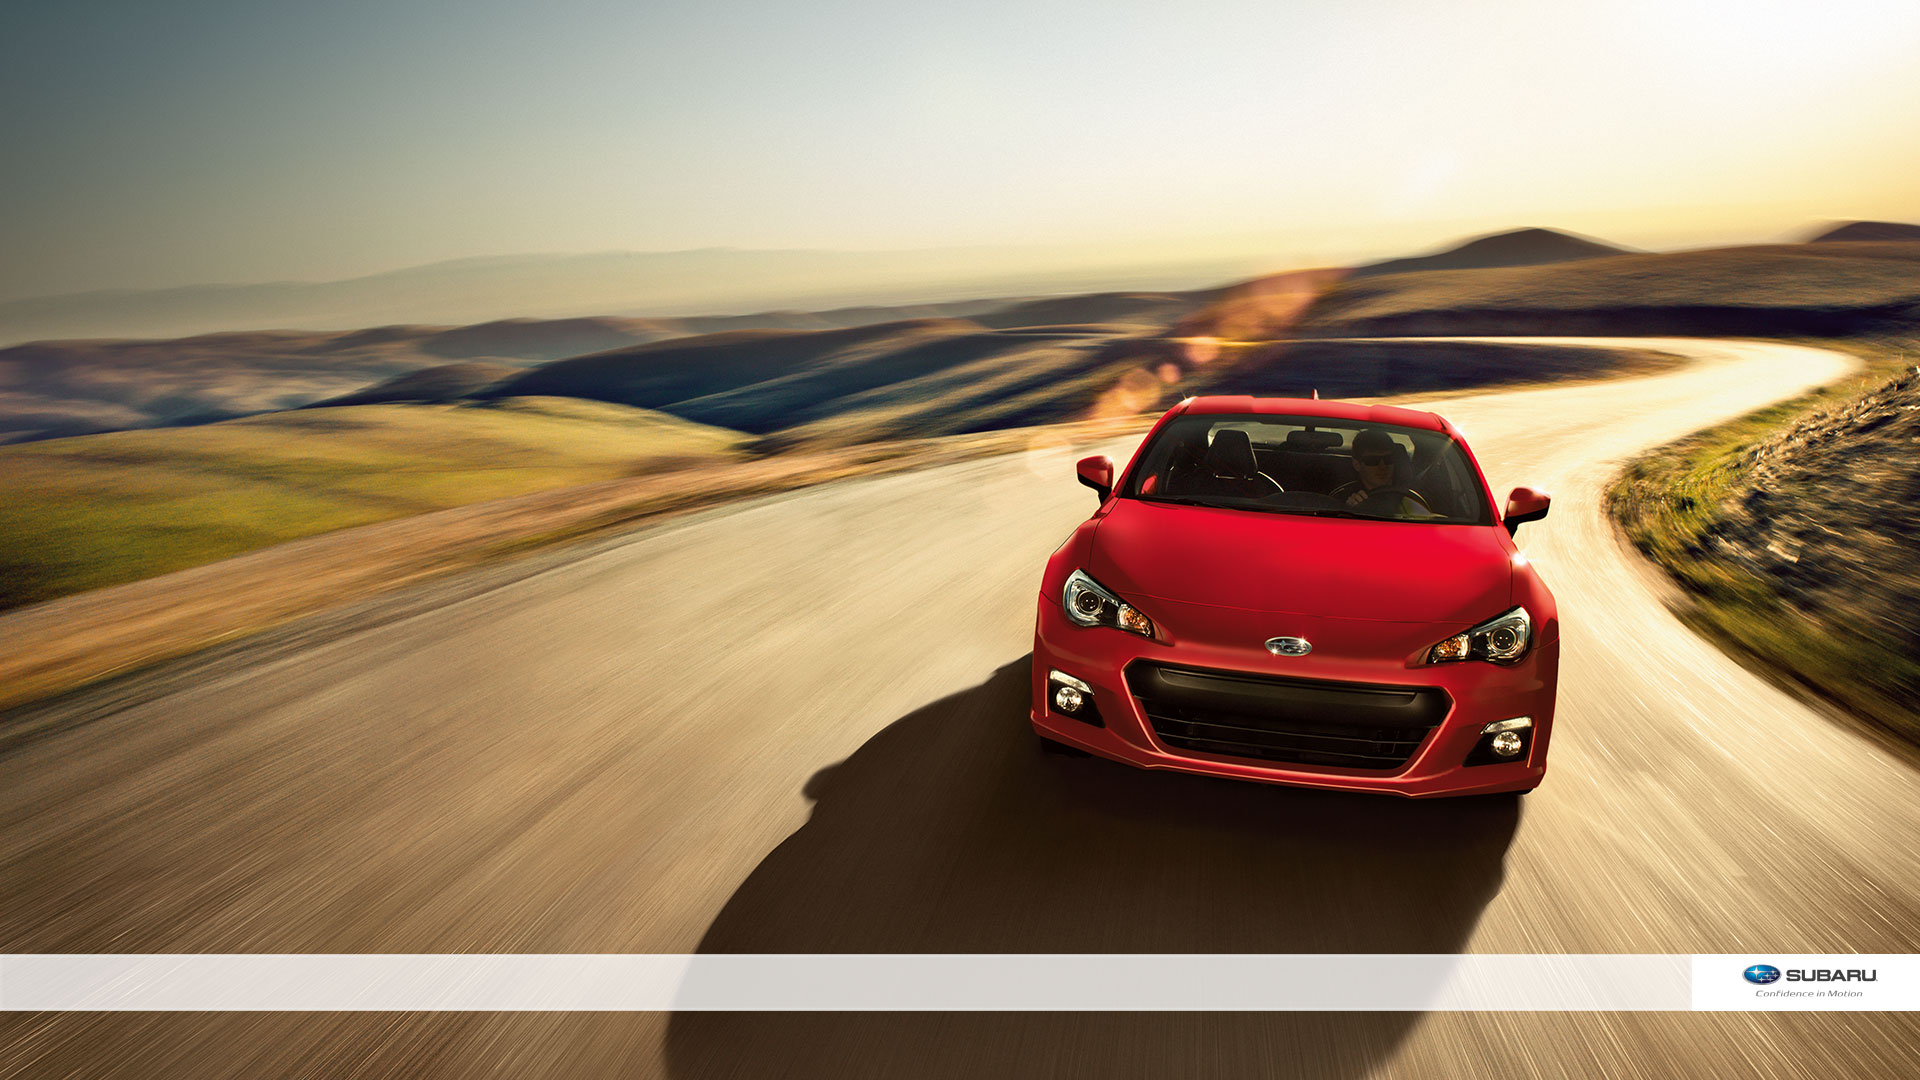 Subaru Brz Red Wallpaper